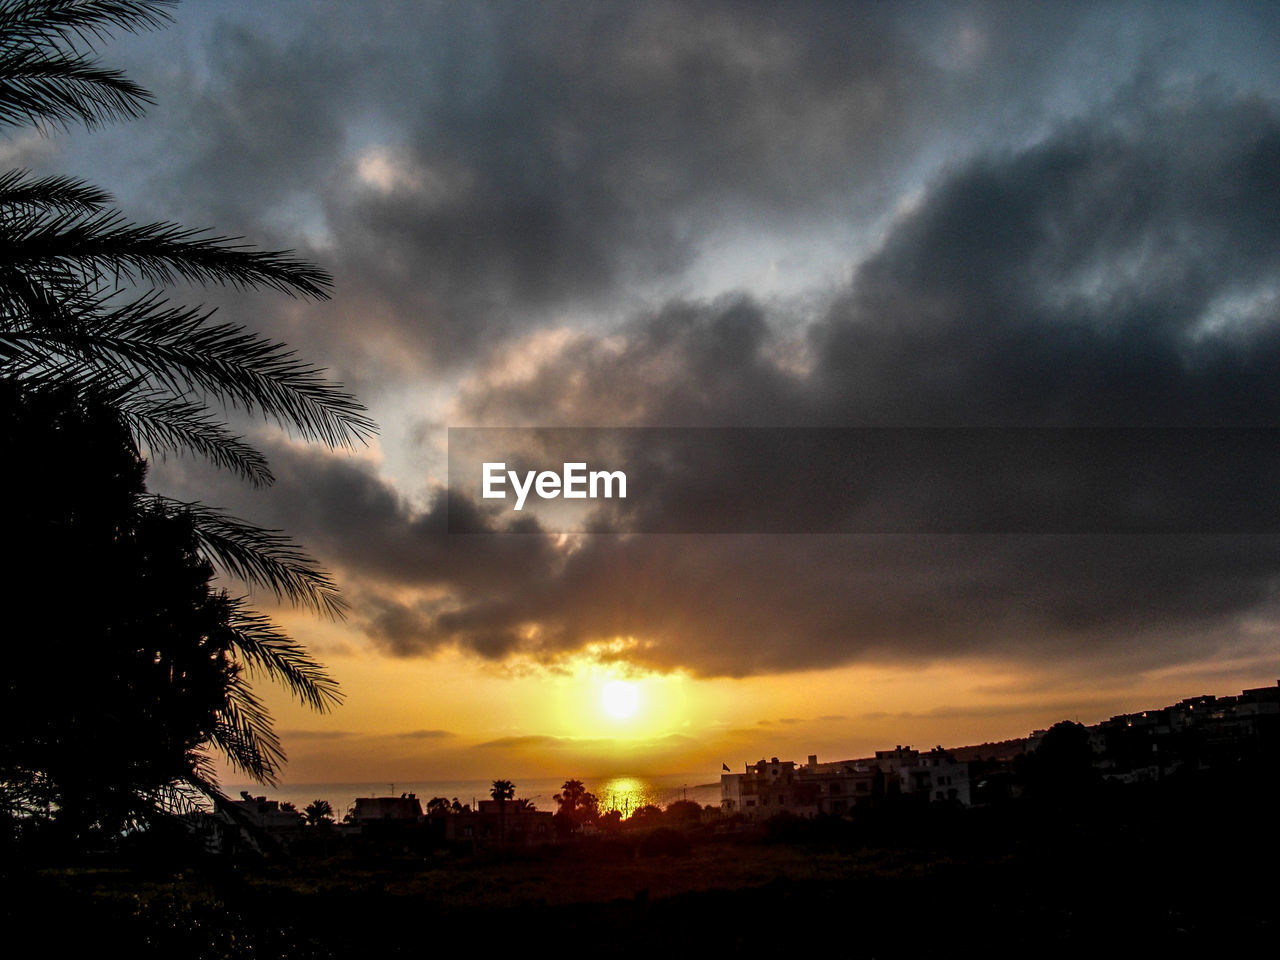 sunset, beauty in nature, sky, nature, cloud - sky, silhouette, scenics, dramatic sky, tree, no people, tranquil scene, outdoors